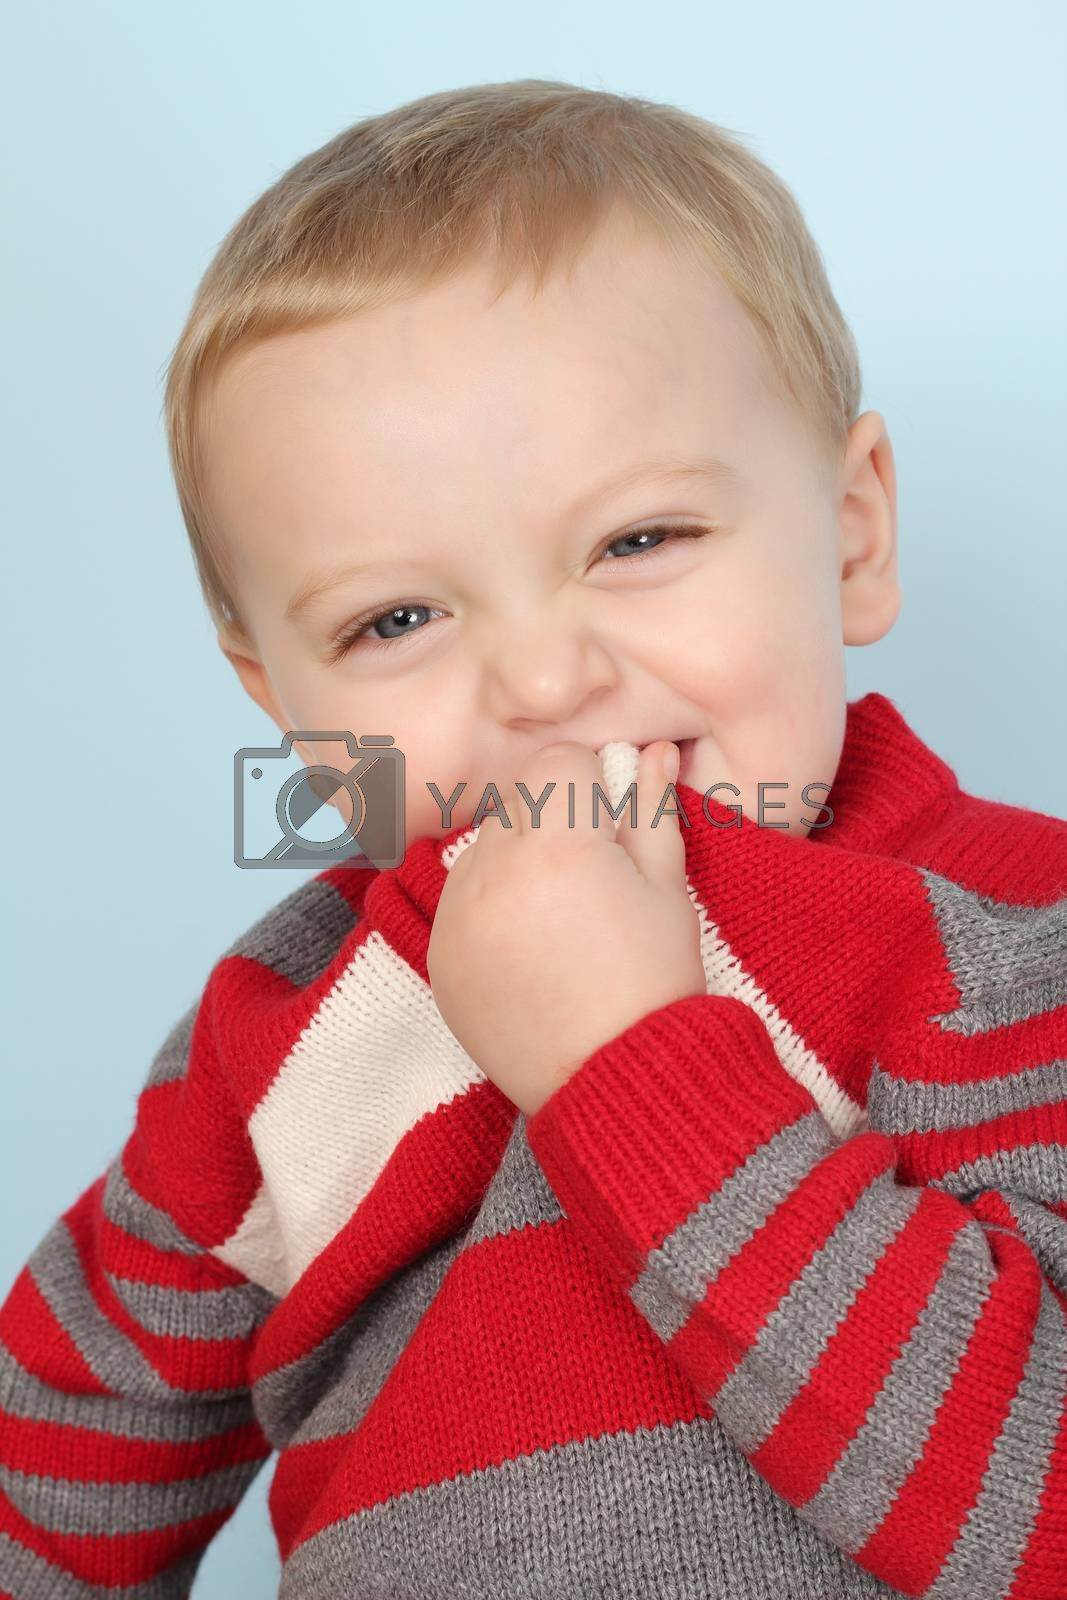 Blonde baby boy against a blue background